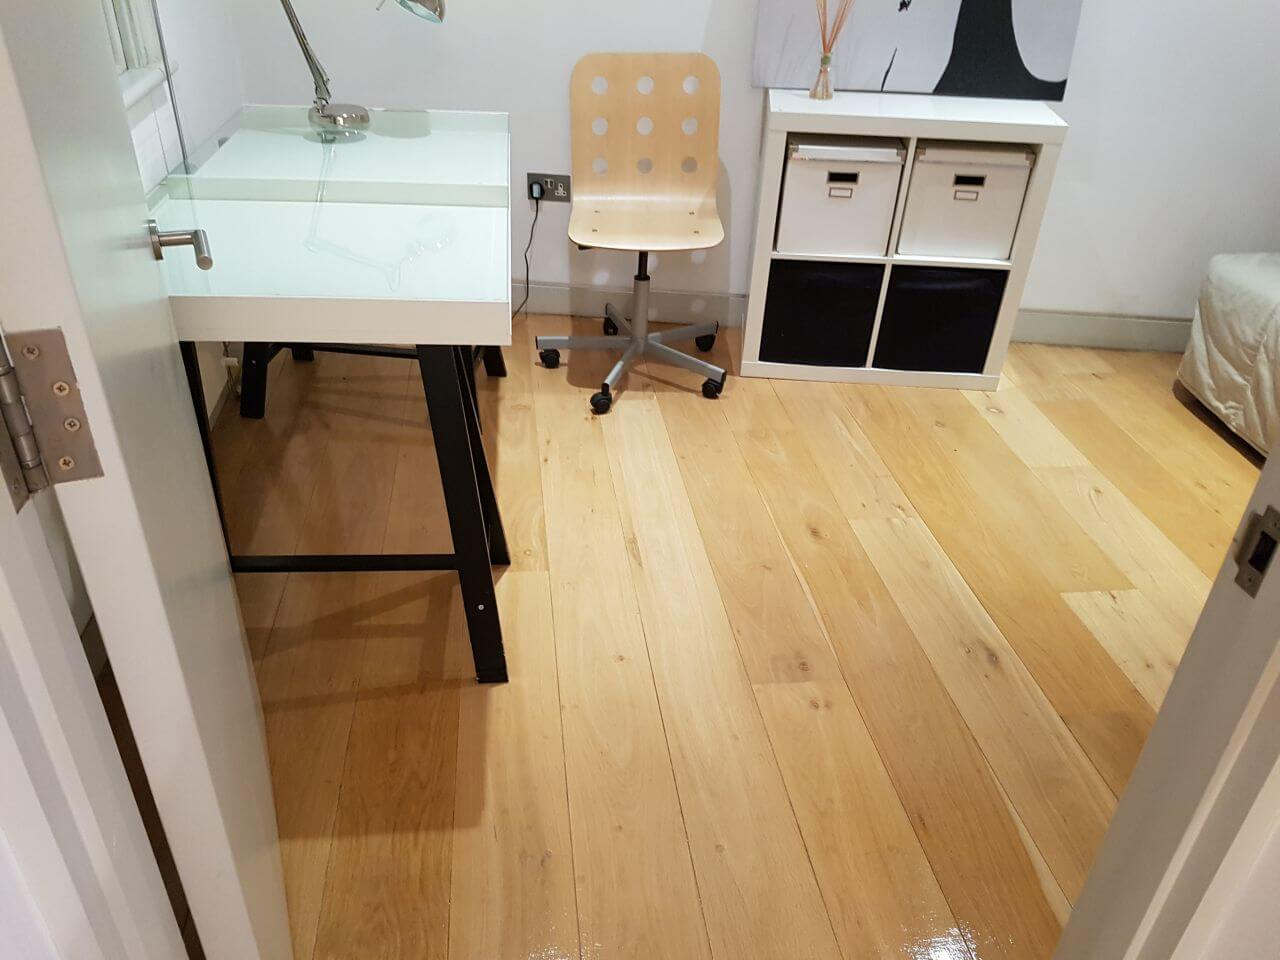 cleaning services South Tottenham